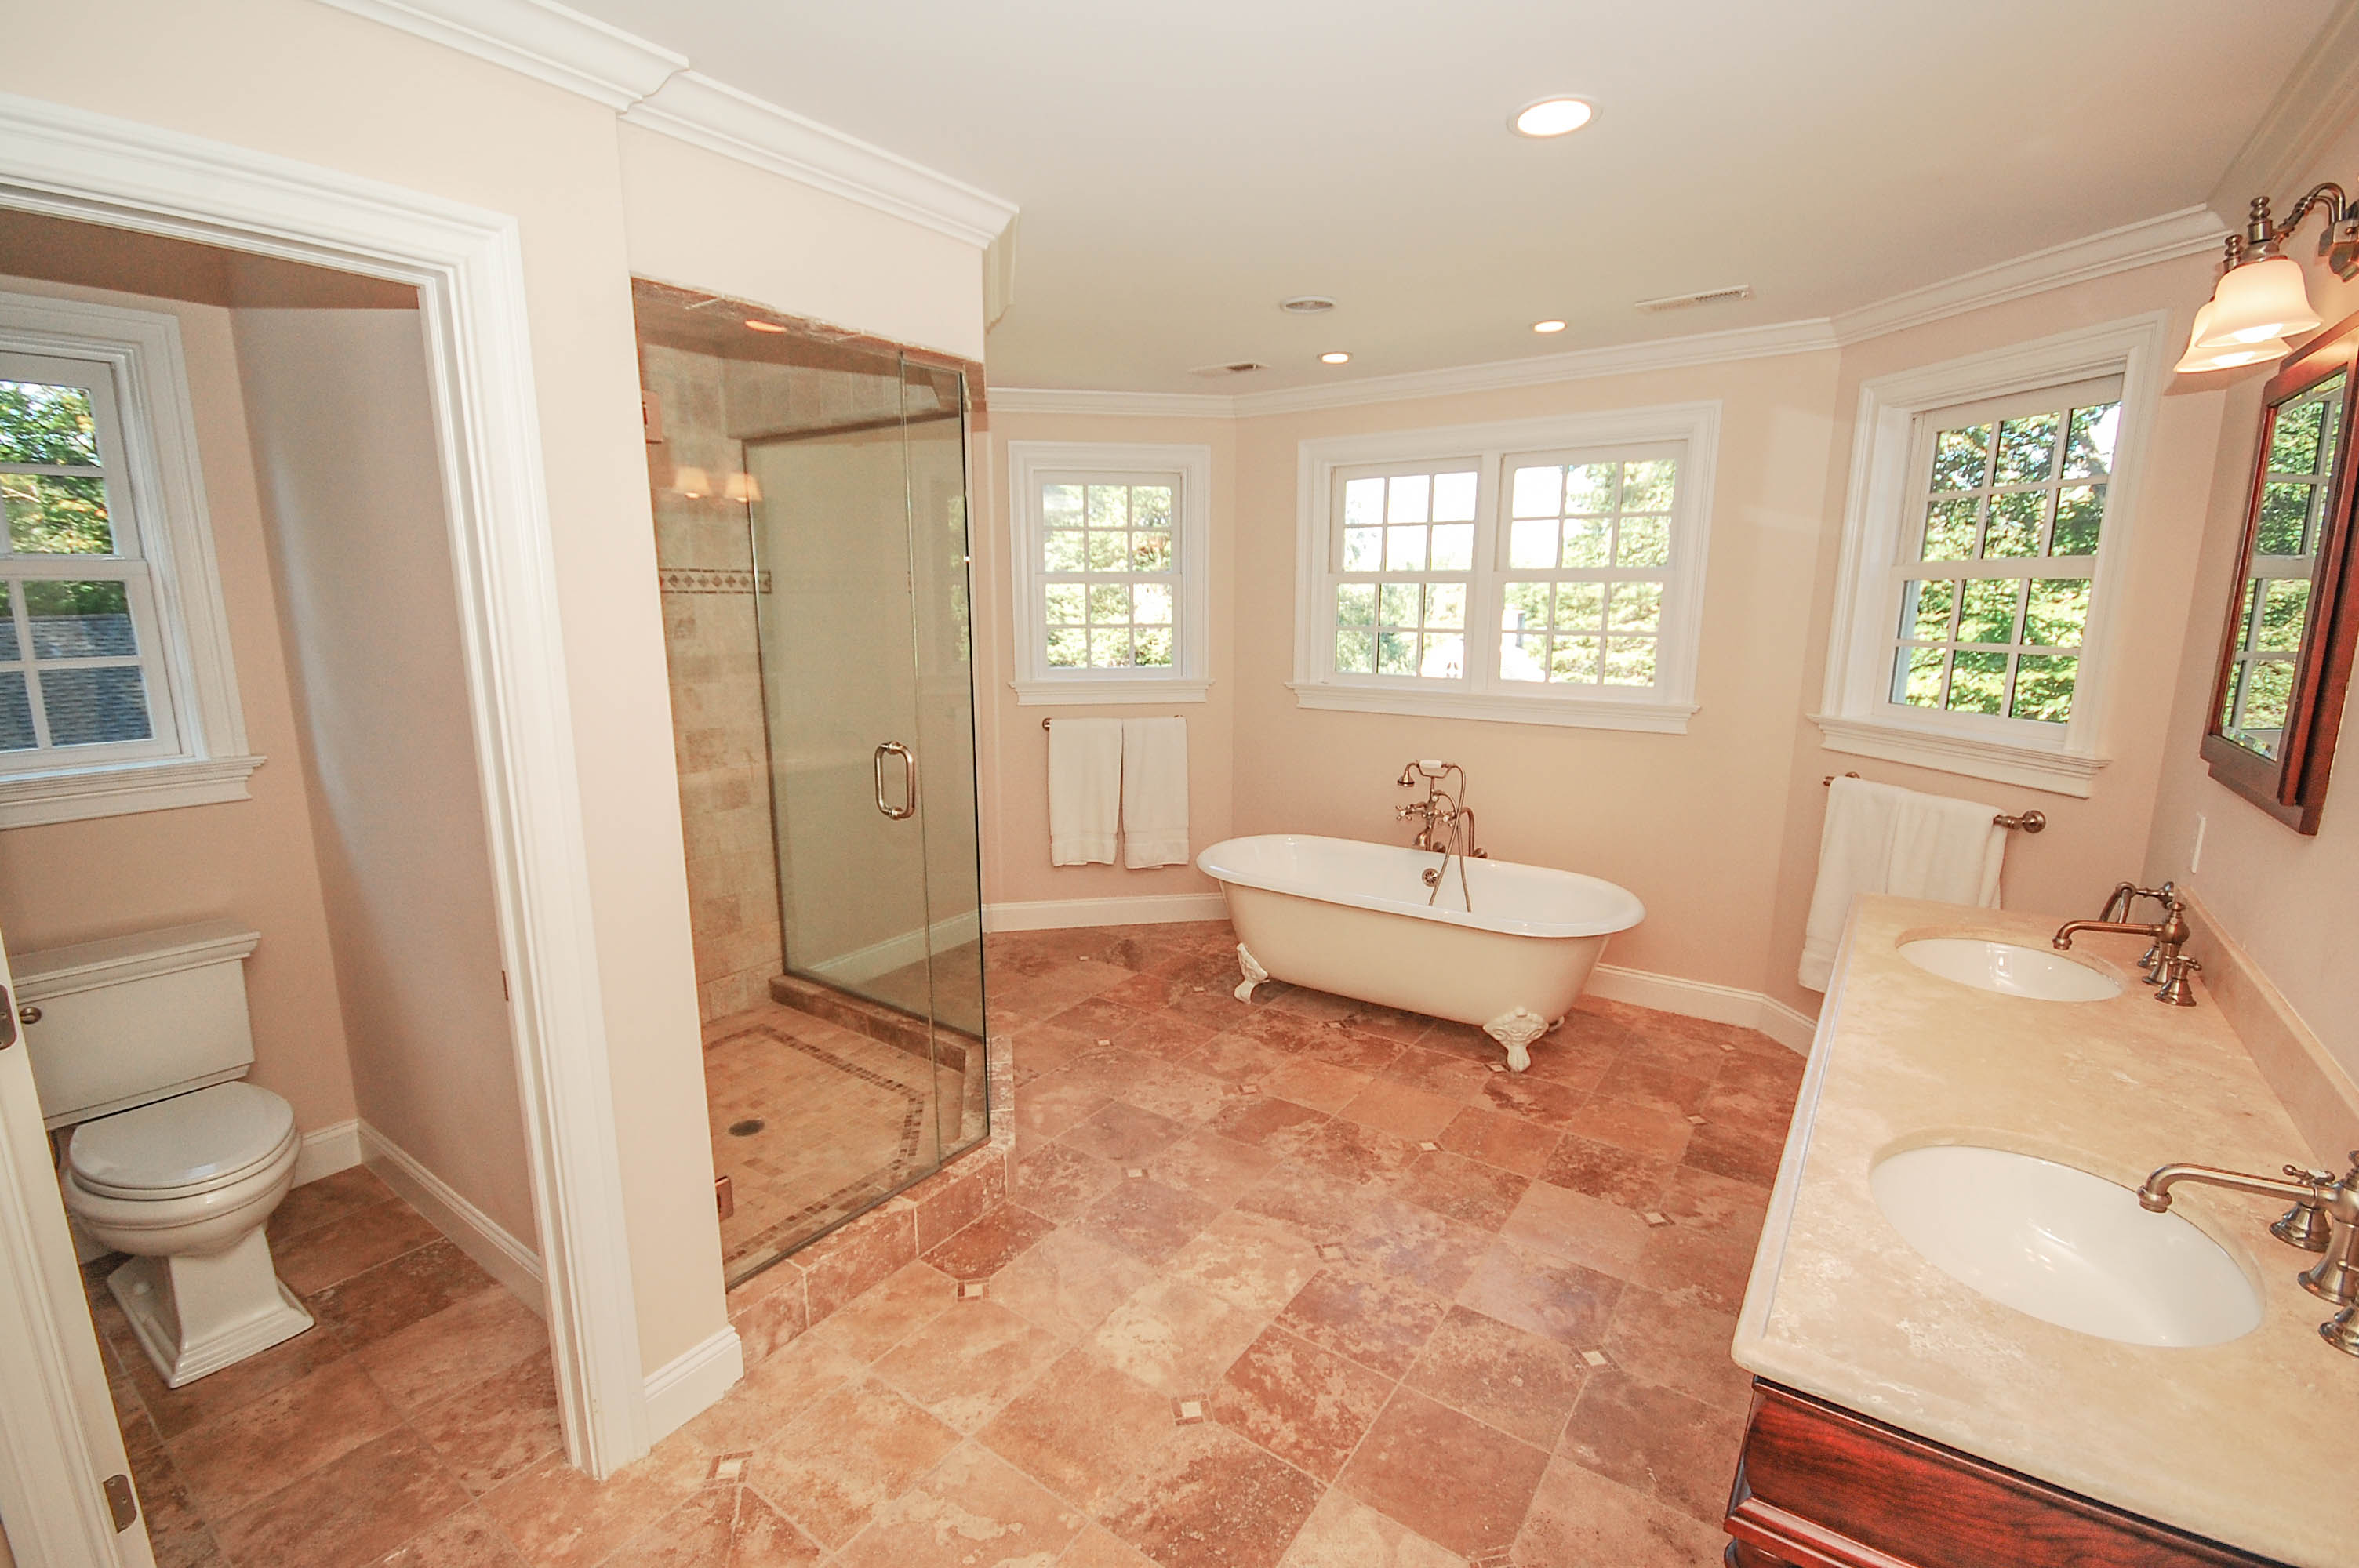 general contractor, master bathroom renovated by SIP Building Solutions - Westport, Fairfield, Stamford, Greenwich, Danbury CT